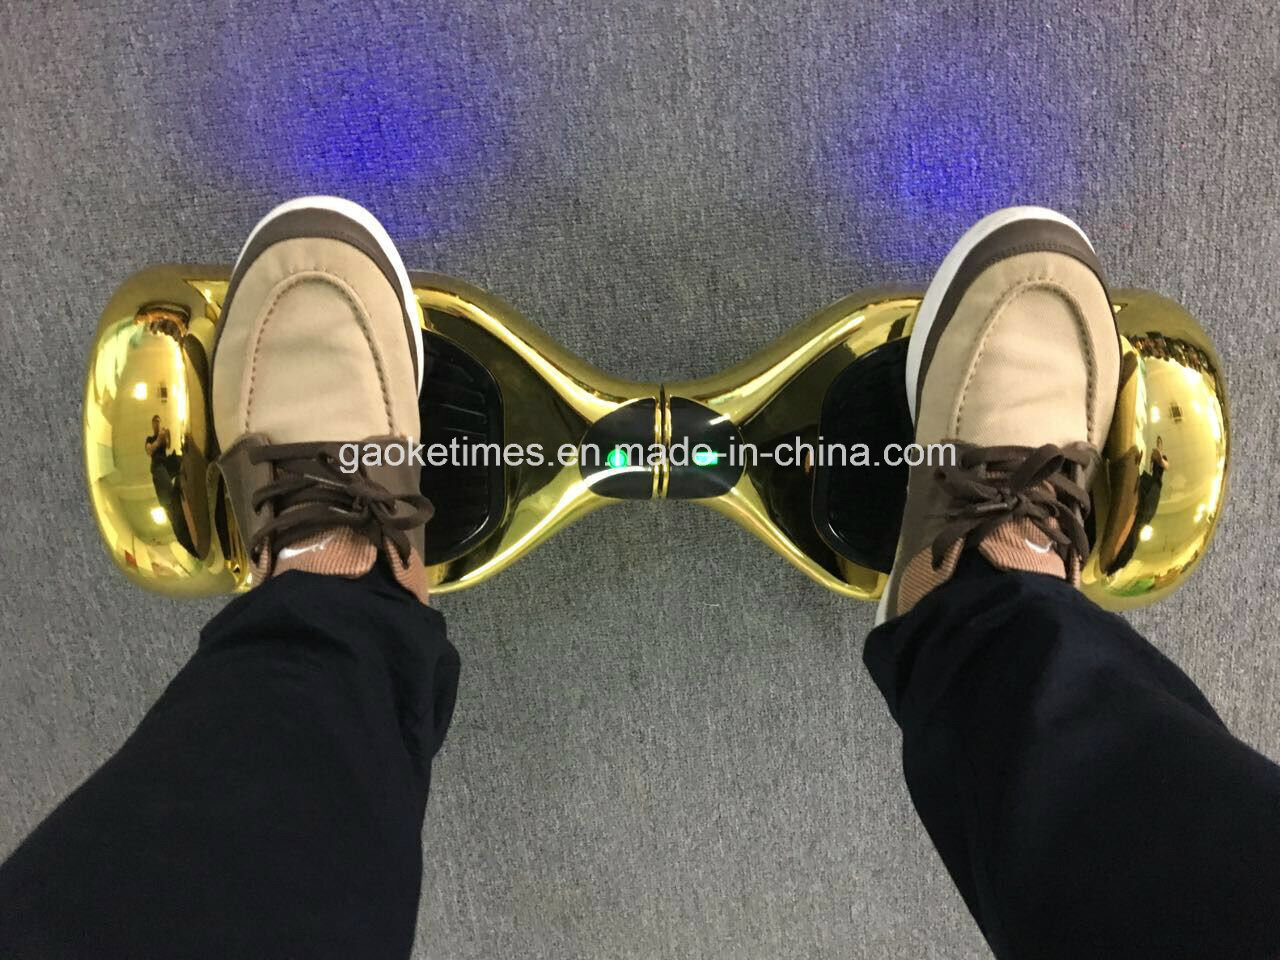 M01 Metallic Gold/Silver Smart Self Balance Electric Scooter/Wheel/Hoverboard